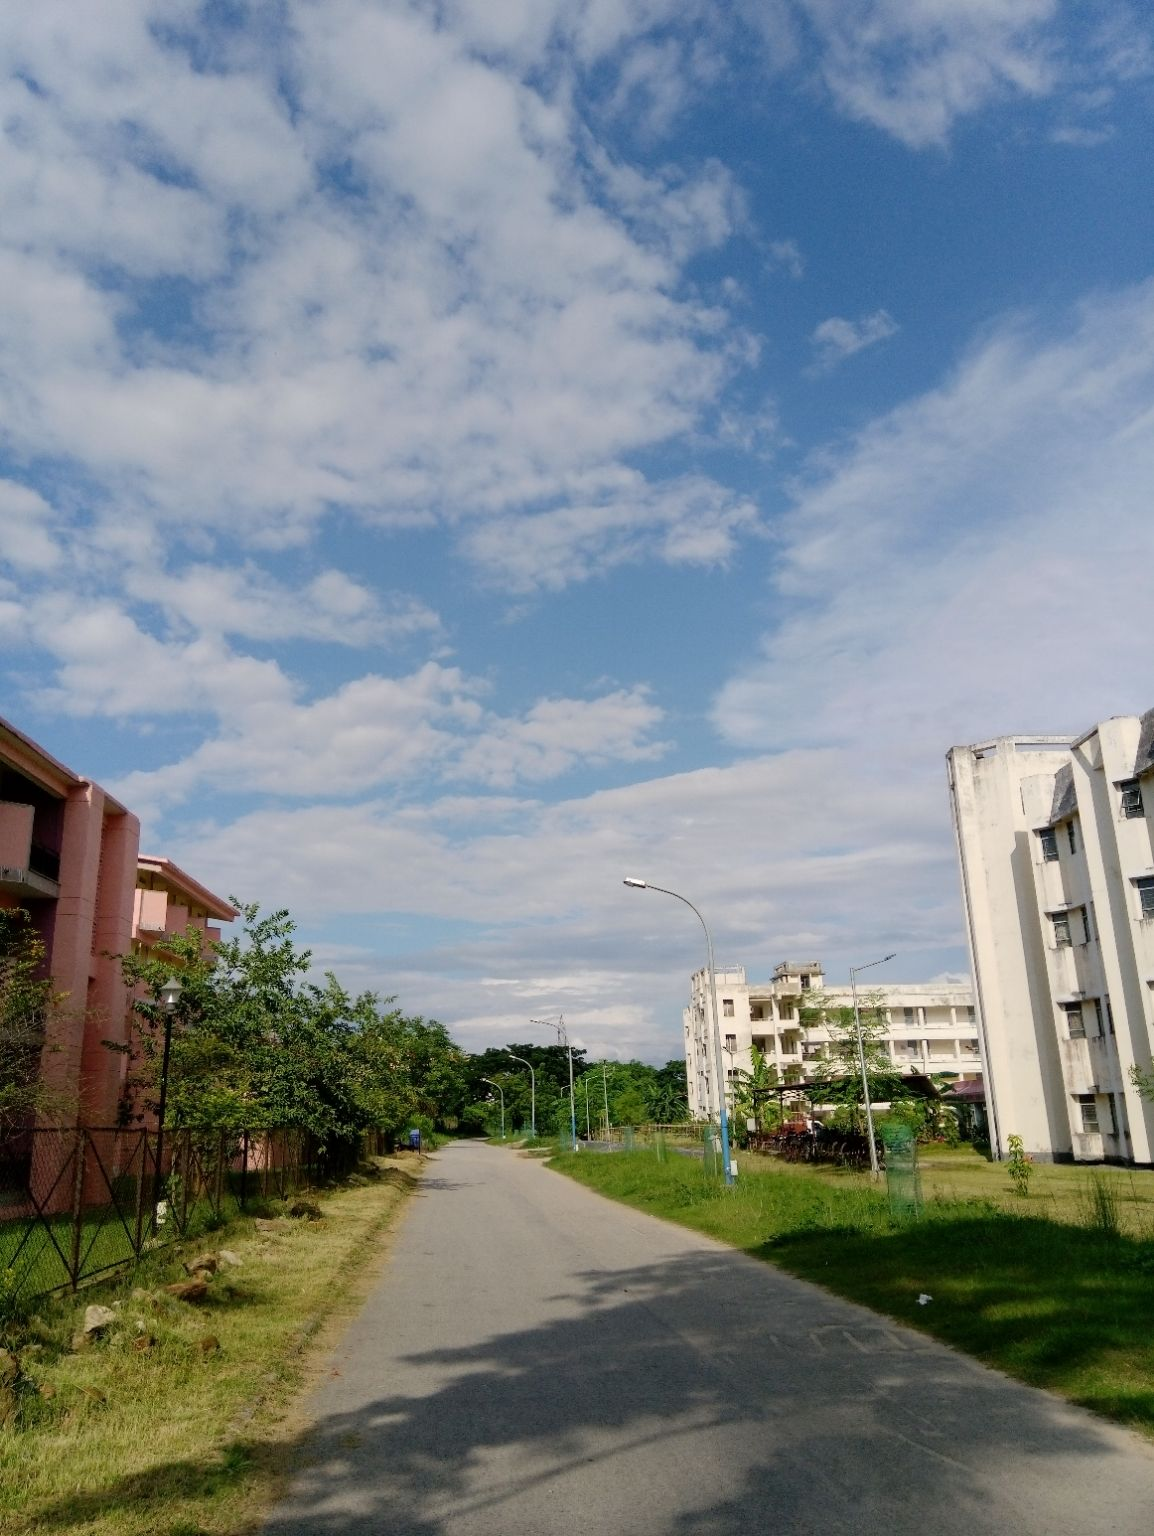 Photo of Indian Institute of Technology Guwahati By Avishek Khatiwara